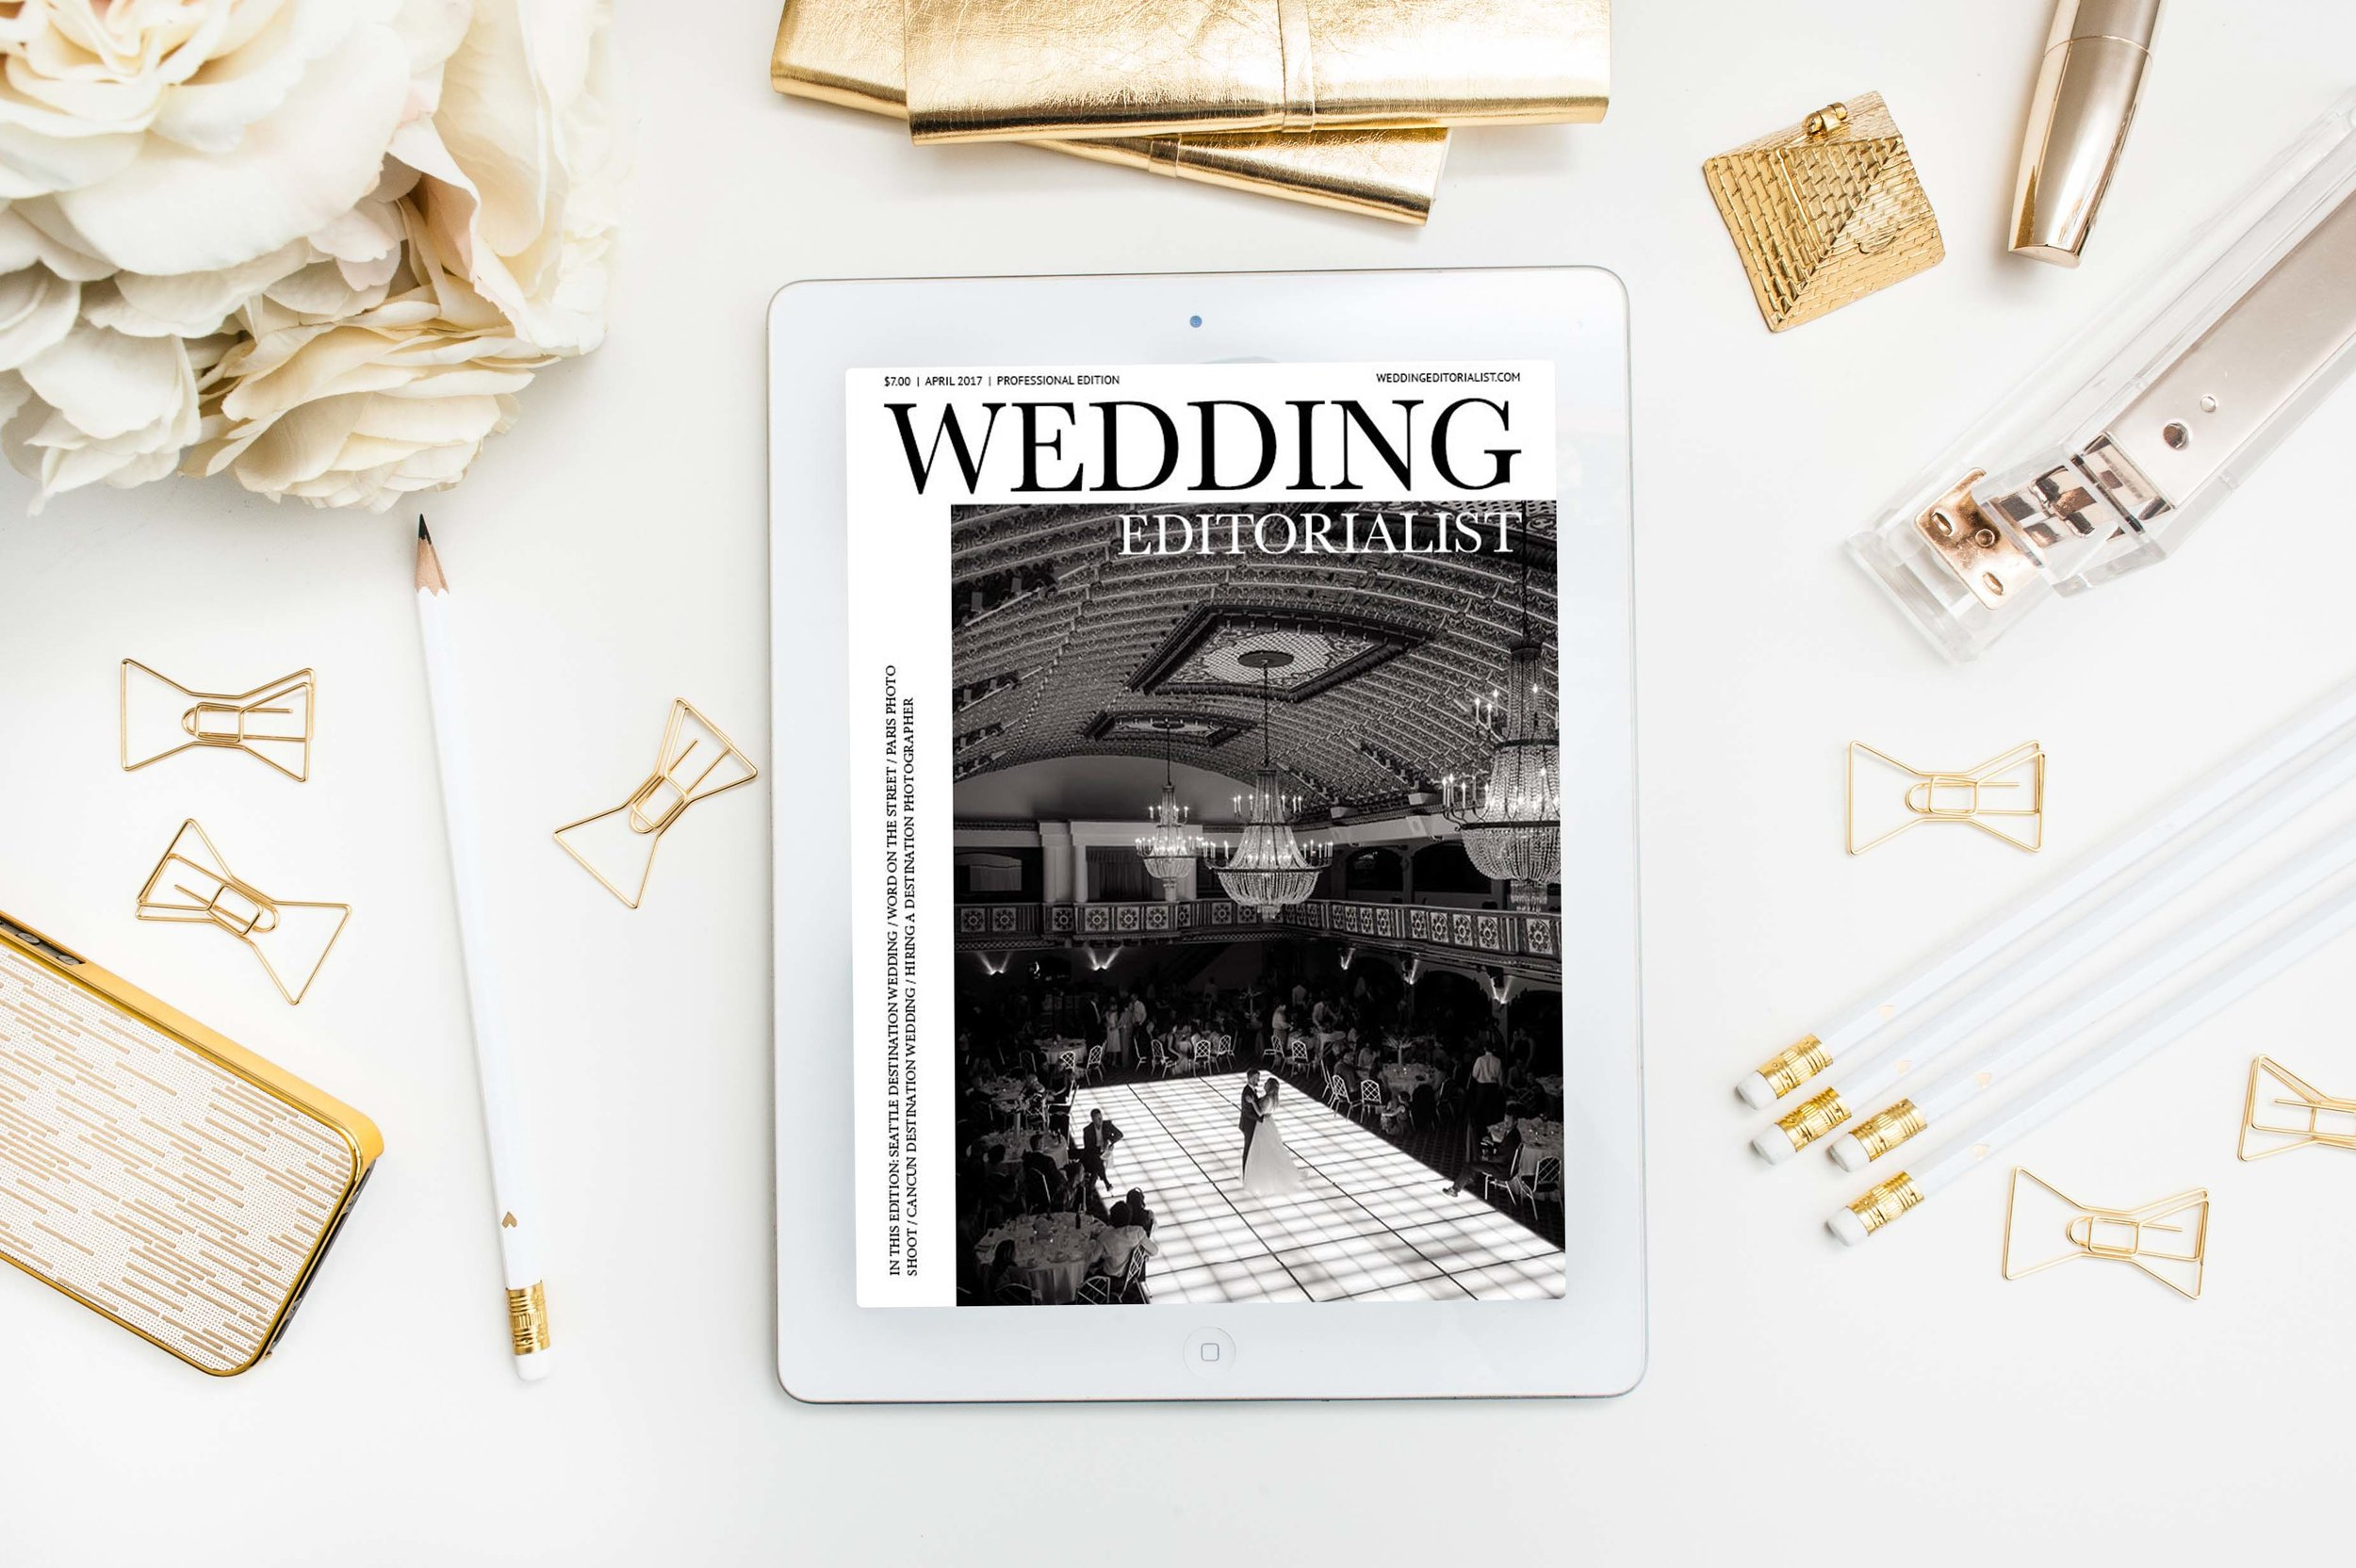 PROFESSIONAL PIECE:  Rebecca Marie applies a fine art approach to her destination wedding photography business. This issue of The Wedding Editorialist beautifully showcases some of her favorite couples while also providing professional insight and advice to newly engaged and married couples.  CLICK HERE TO READ.